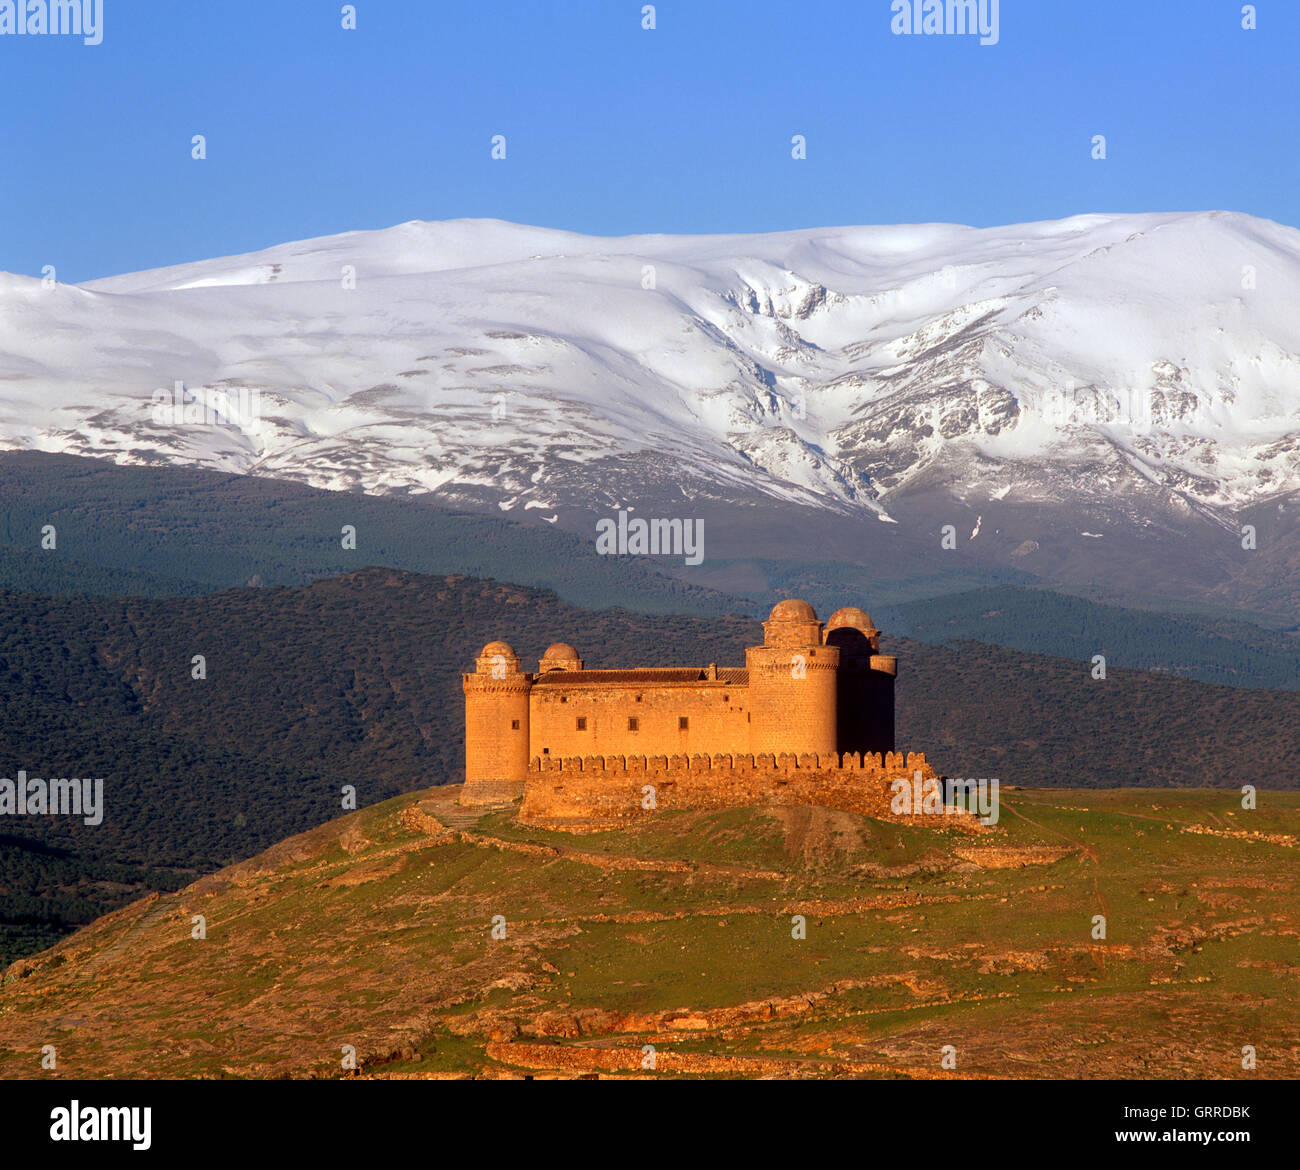 La Calahorra Castle and the snow capped Sierra Nevada mountains, Granada Province, Andalucia, Spain - Stock Image